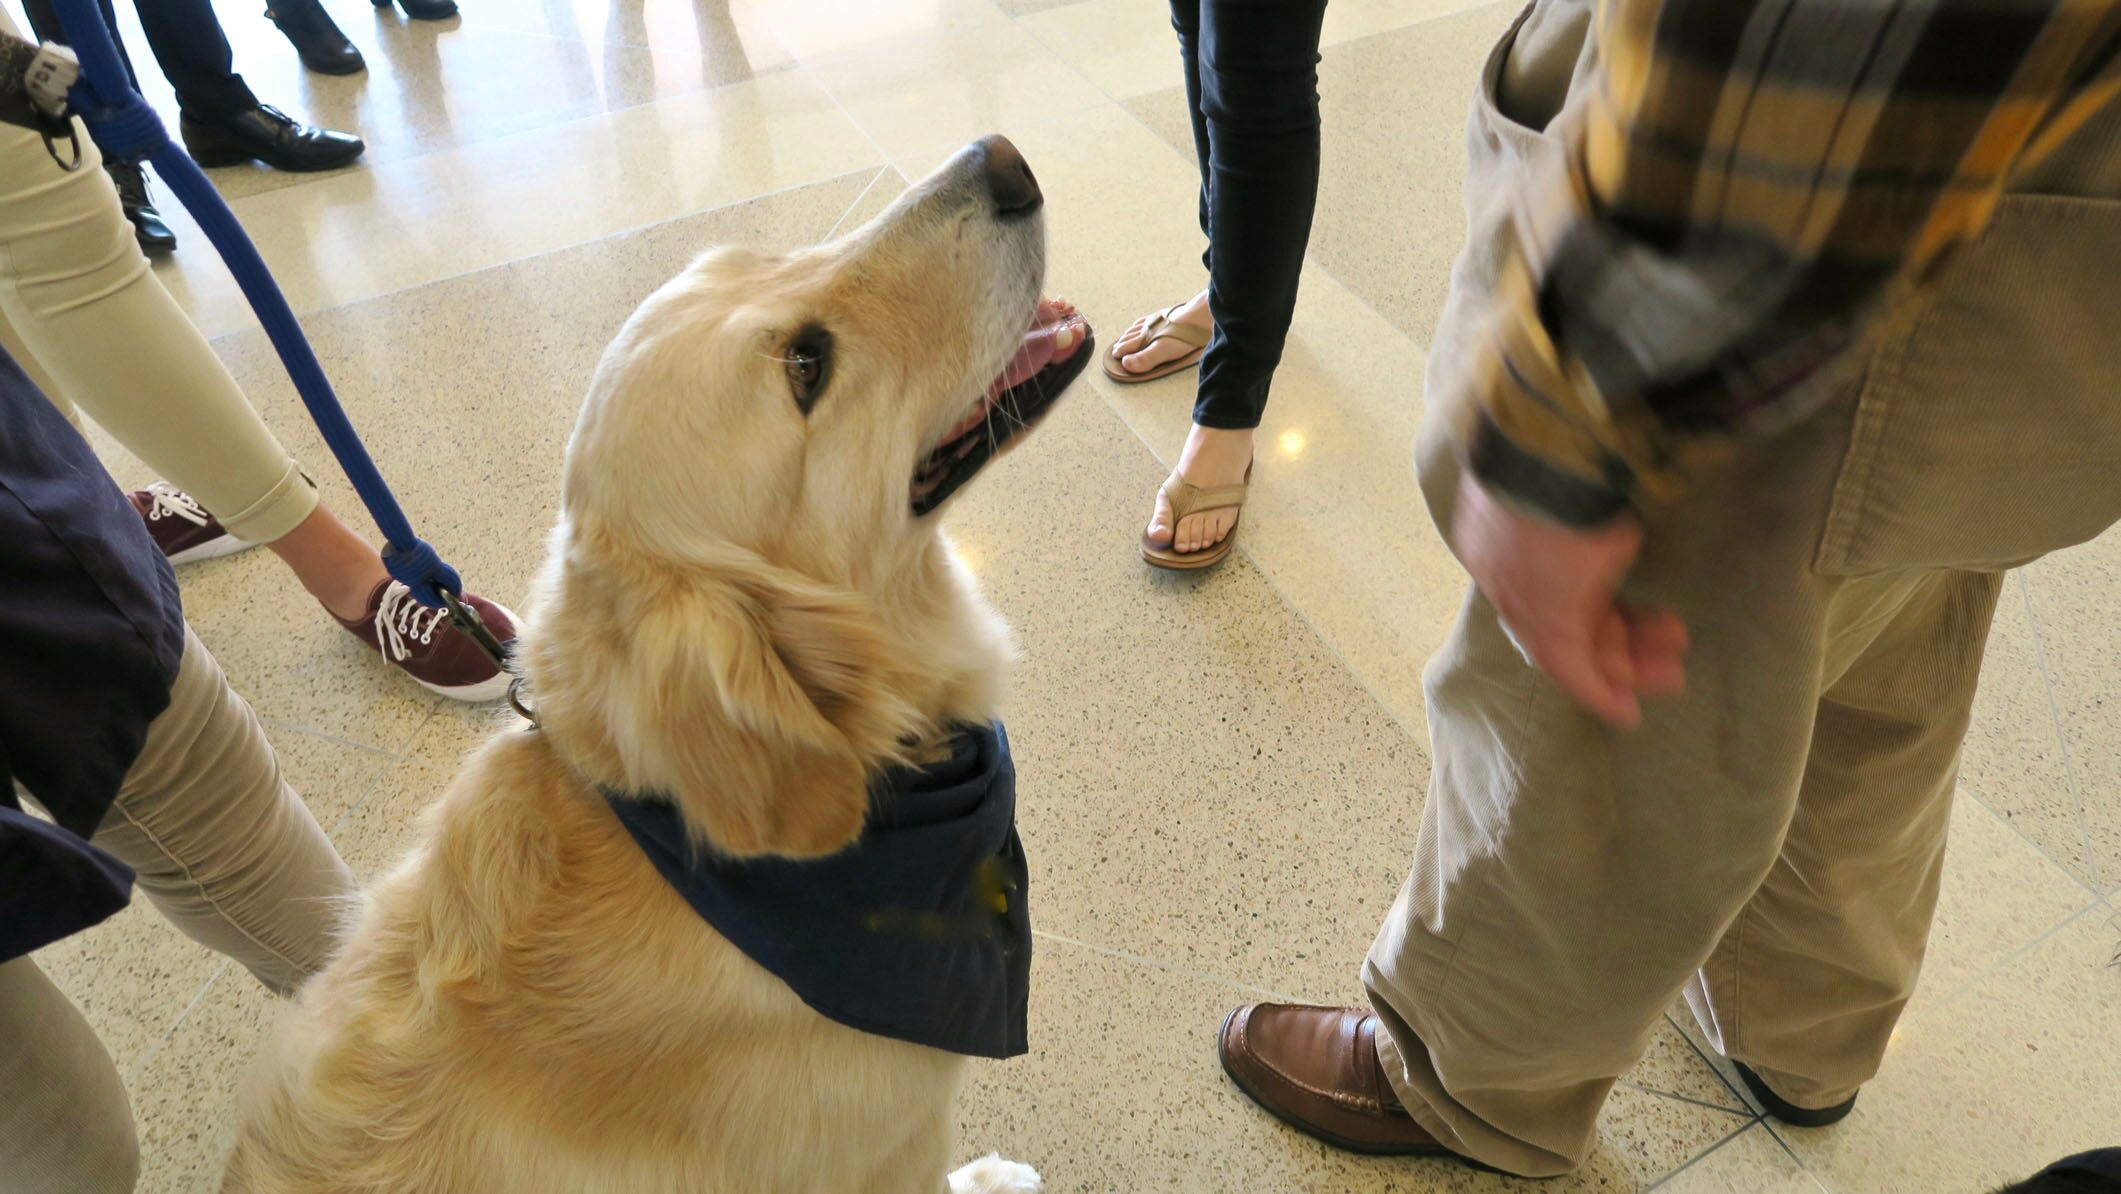 Service dogs travel to El Paso to comfort victims and first responders: 'These dogs can reach places in the heart no human can'